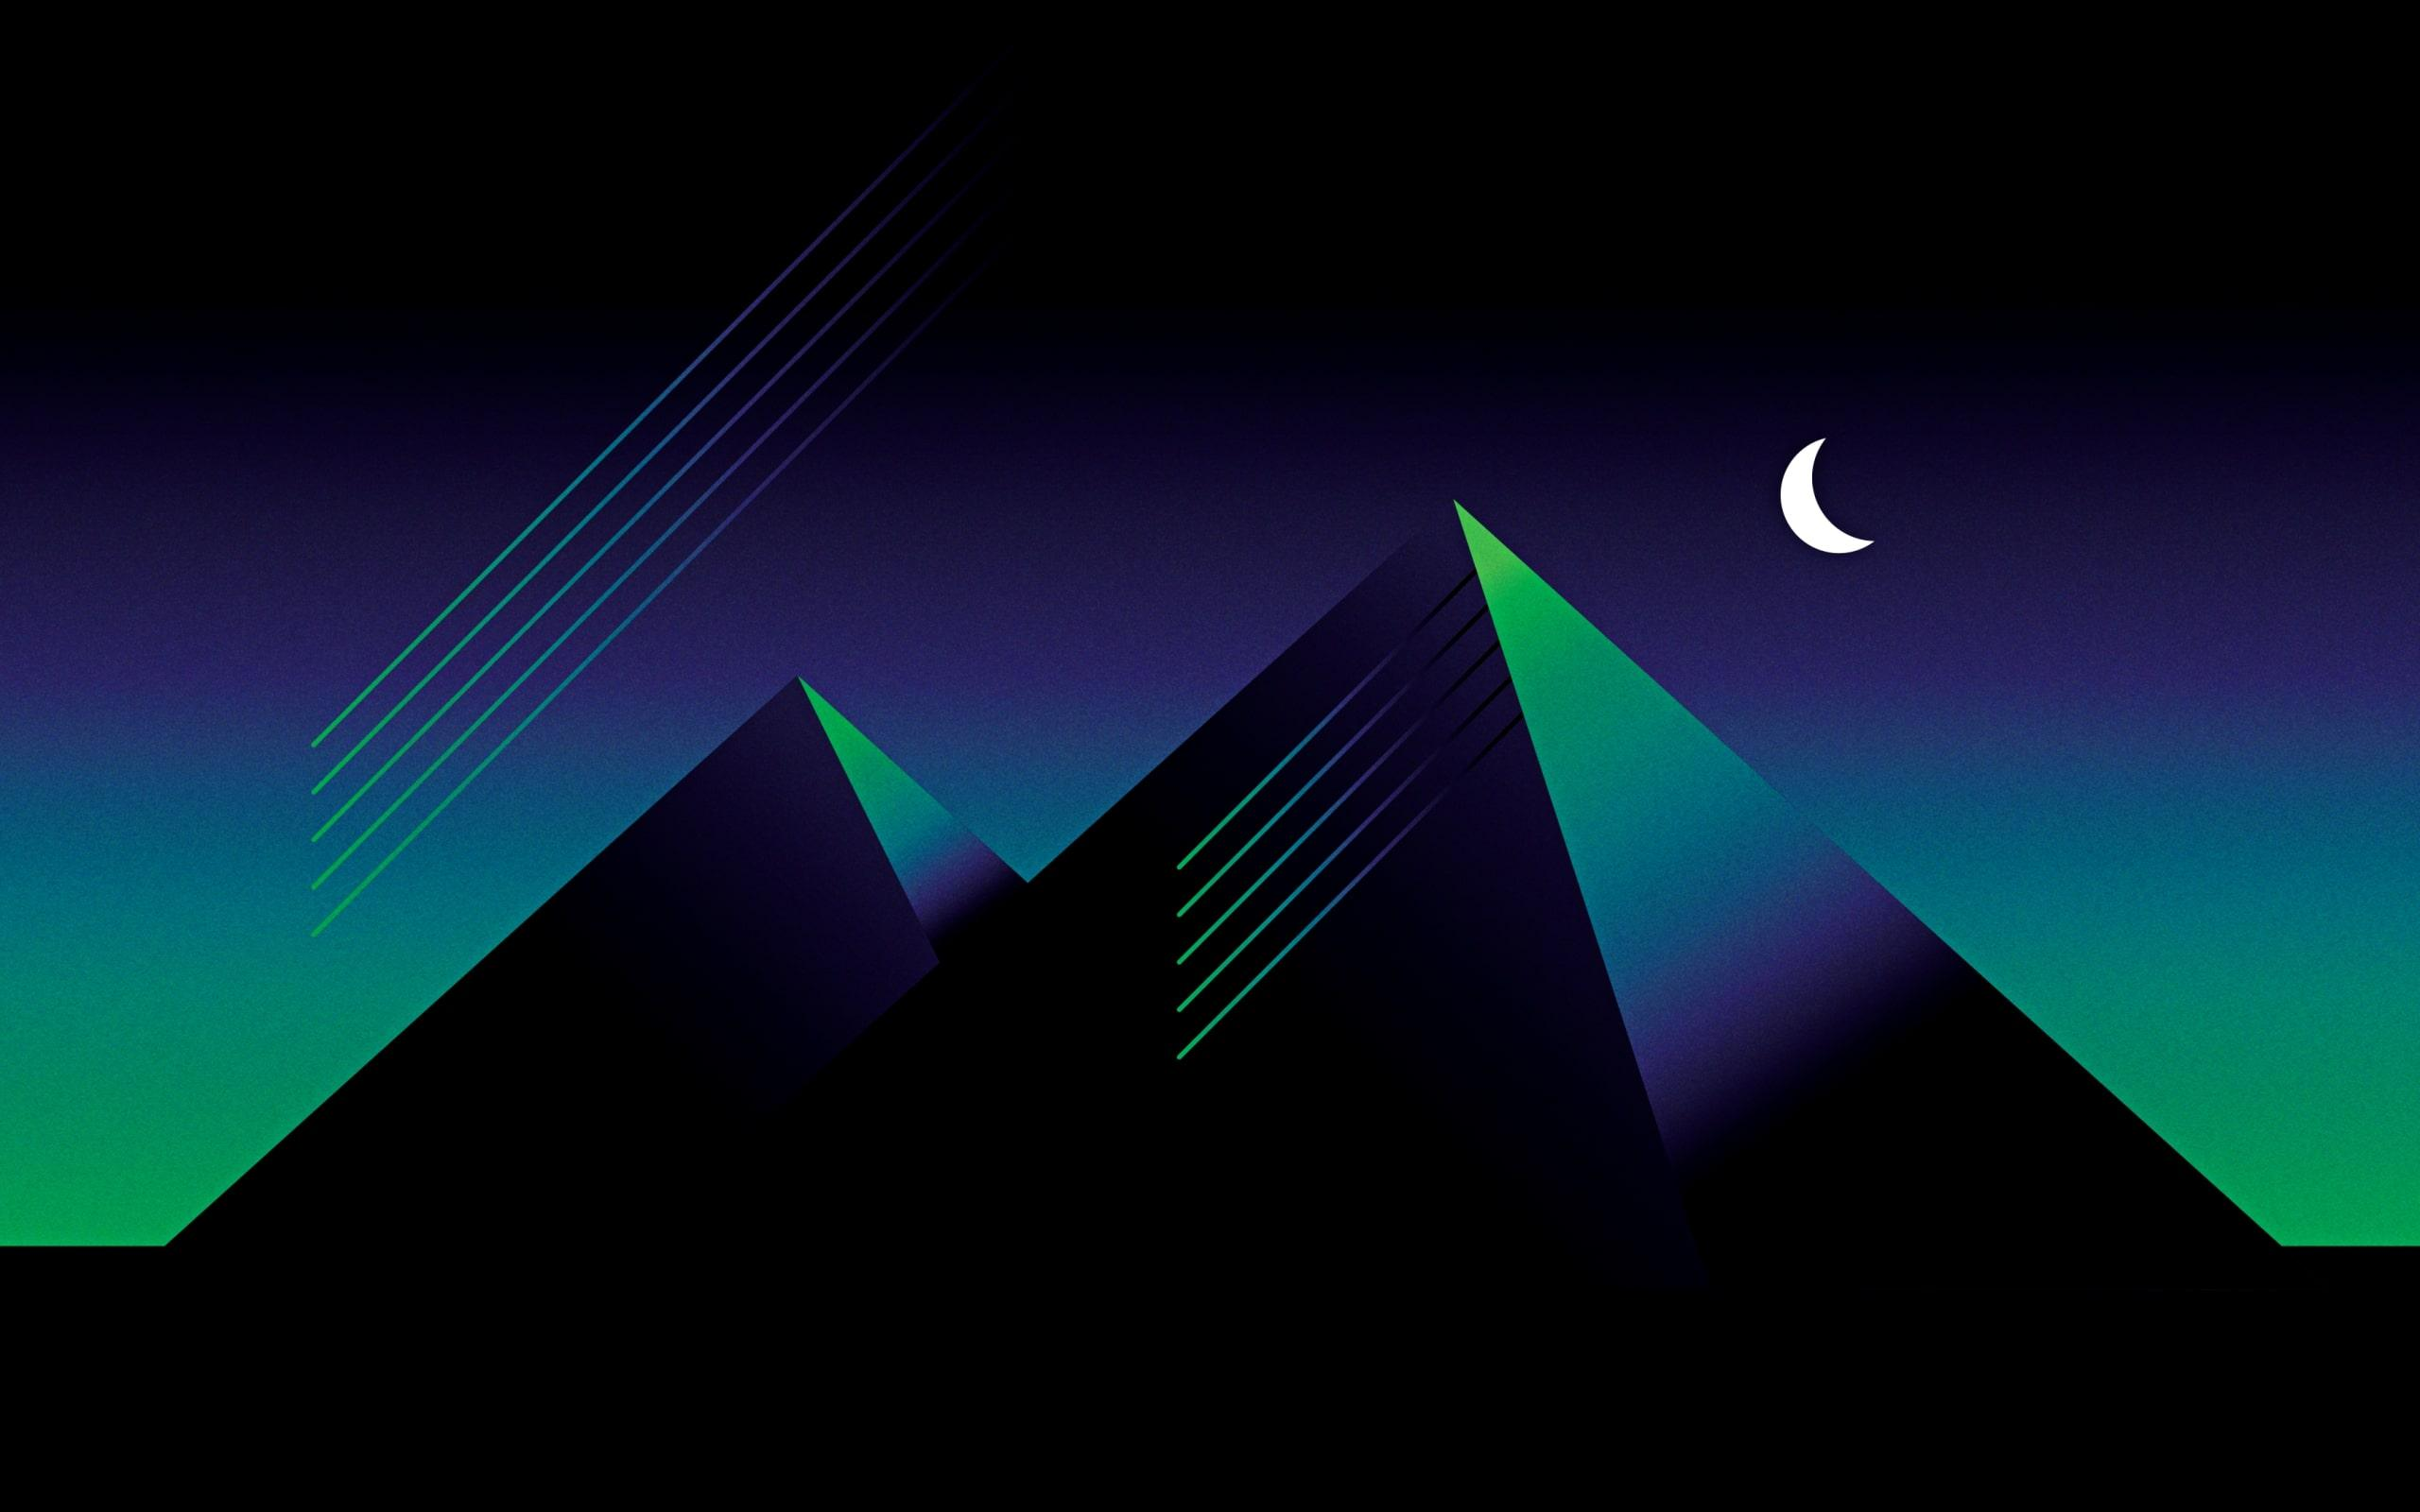 Wallpapers of Abstract, Pyramid, Minimalism, Blue, Black, Green